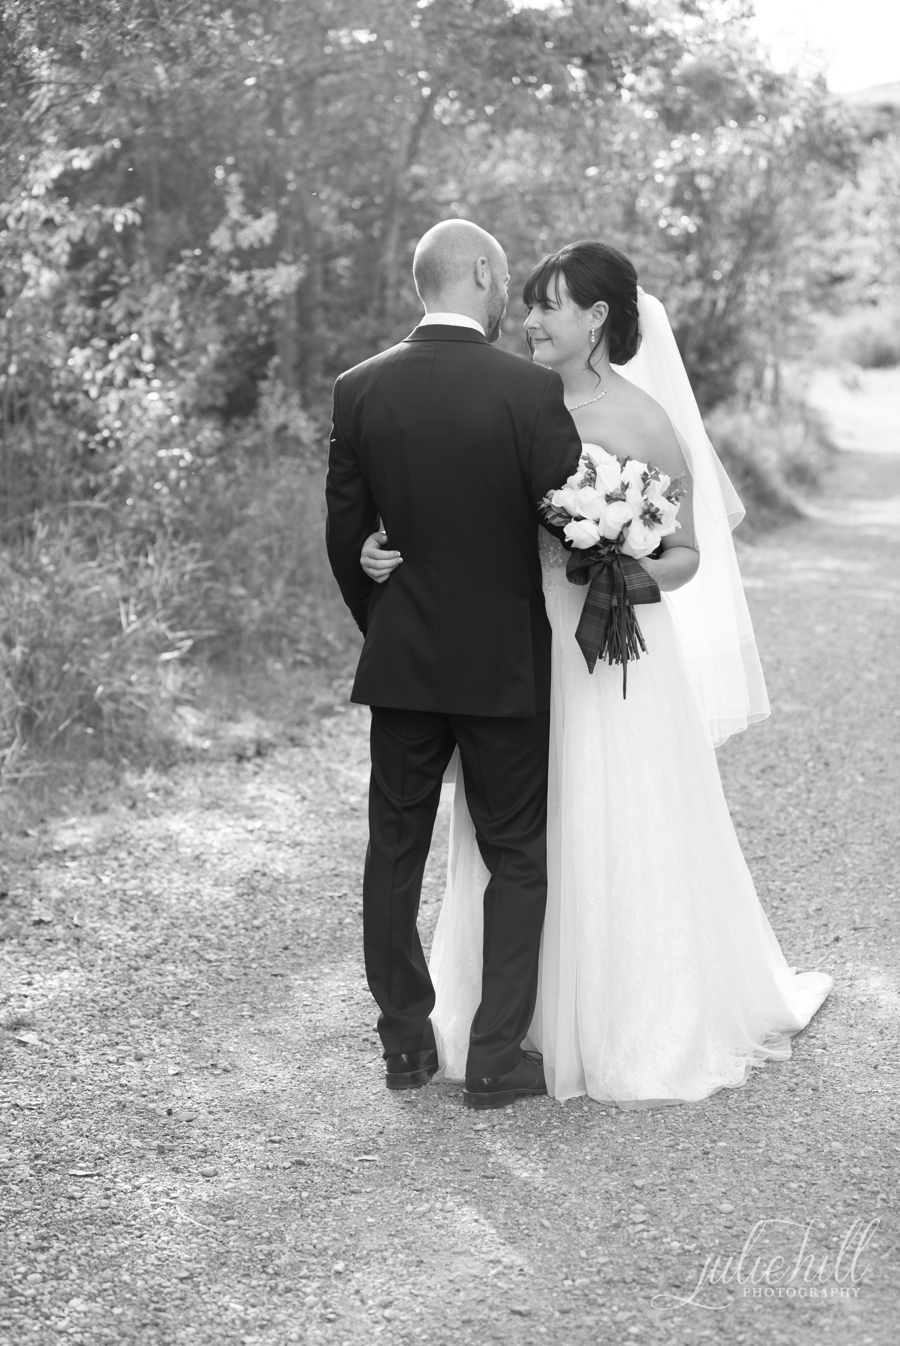 12-Cochrane-Alberta-Ranchehouse-Julie-Hill-Photography-Wedding-Field-formals-photo03